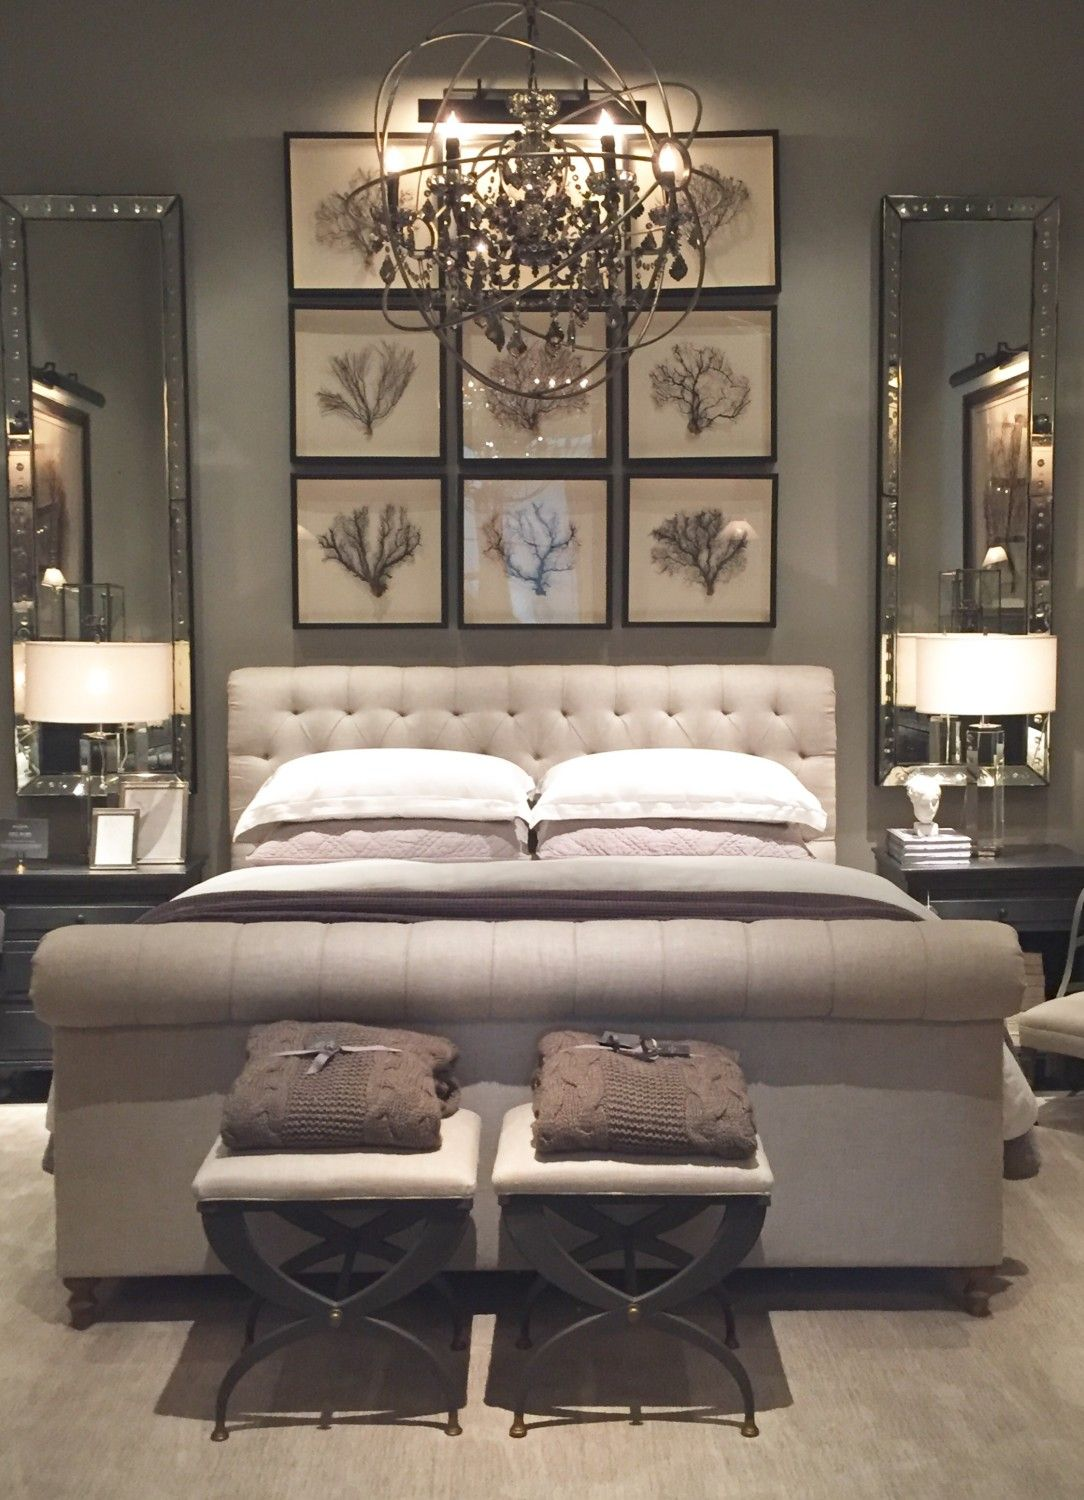 Glamorous Bedroom Decor Via @stallonemedia | Master Bedroom | Pinterest |  Bedrooms, Master Bedroom And Room